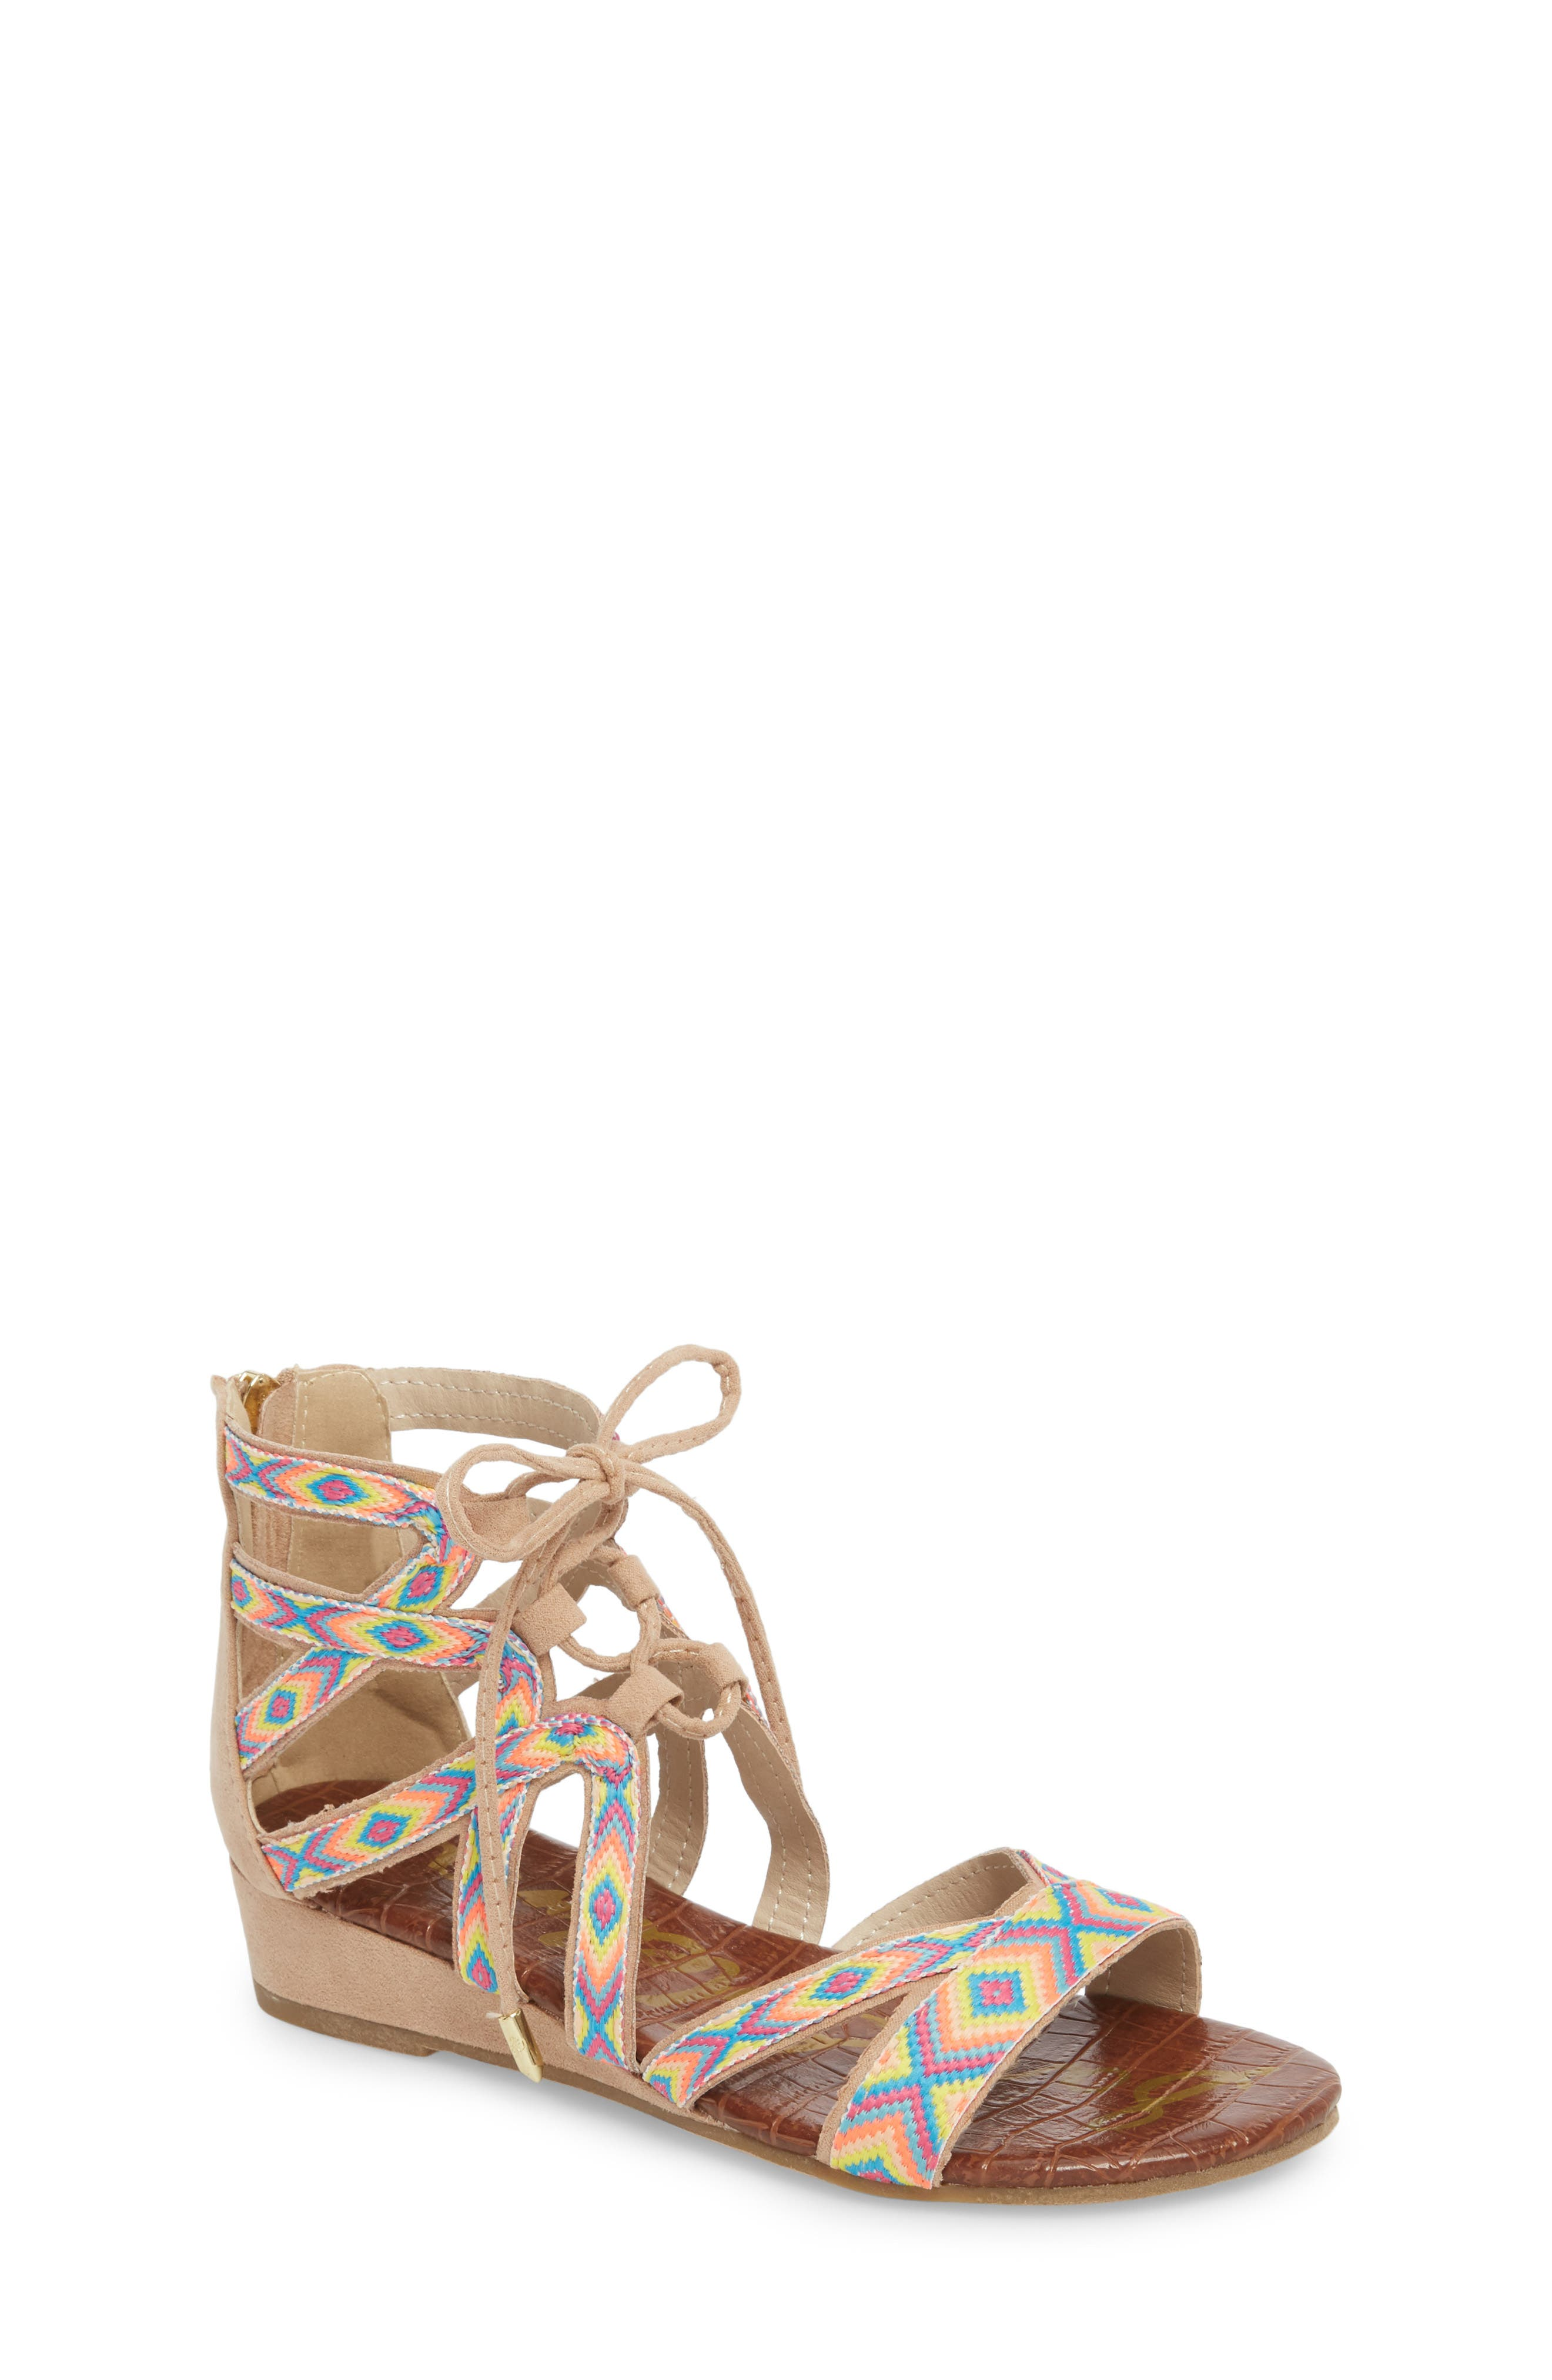 Danica Friendship Ghillie Wedge Sandal,                         Main,                         color, Natural Faux Suede